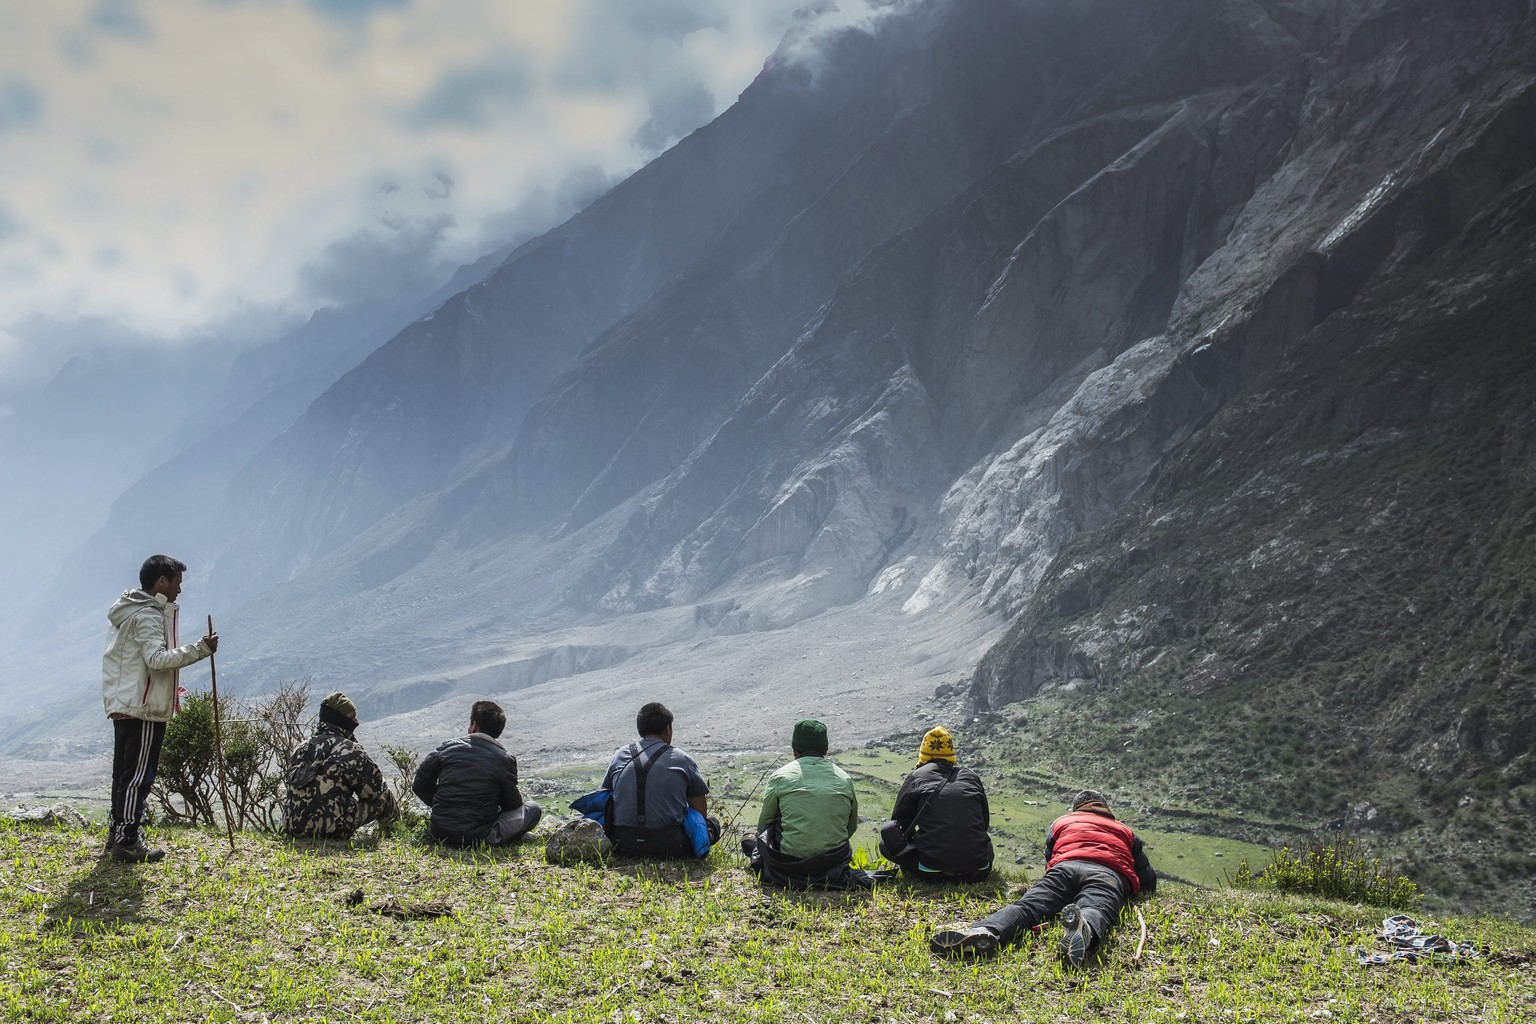 epa04789646 A picture made available 08 June 2015 shows local people watching the site of an landslide caused by an earthquake in Langtang valley, Nepal, 04 June 2015. Nepalese army have started a search operation to recover over 50 dead bodies from a landslide triggered in April. According to reports, Langtang is believed to be one of the worst hit places in Nepal after a landslide triggered by the earthquake buried all buildings and killing more than 200 hundred people including foreign trekkers.  EPA/SAMIR JUNG THAPA